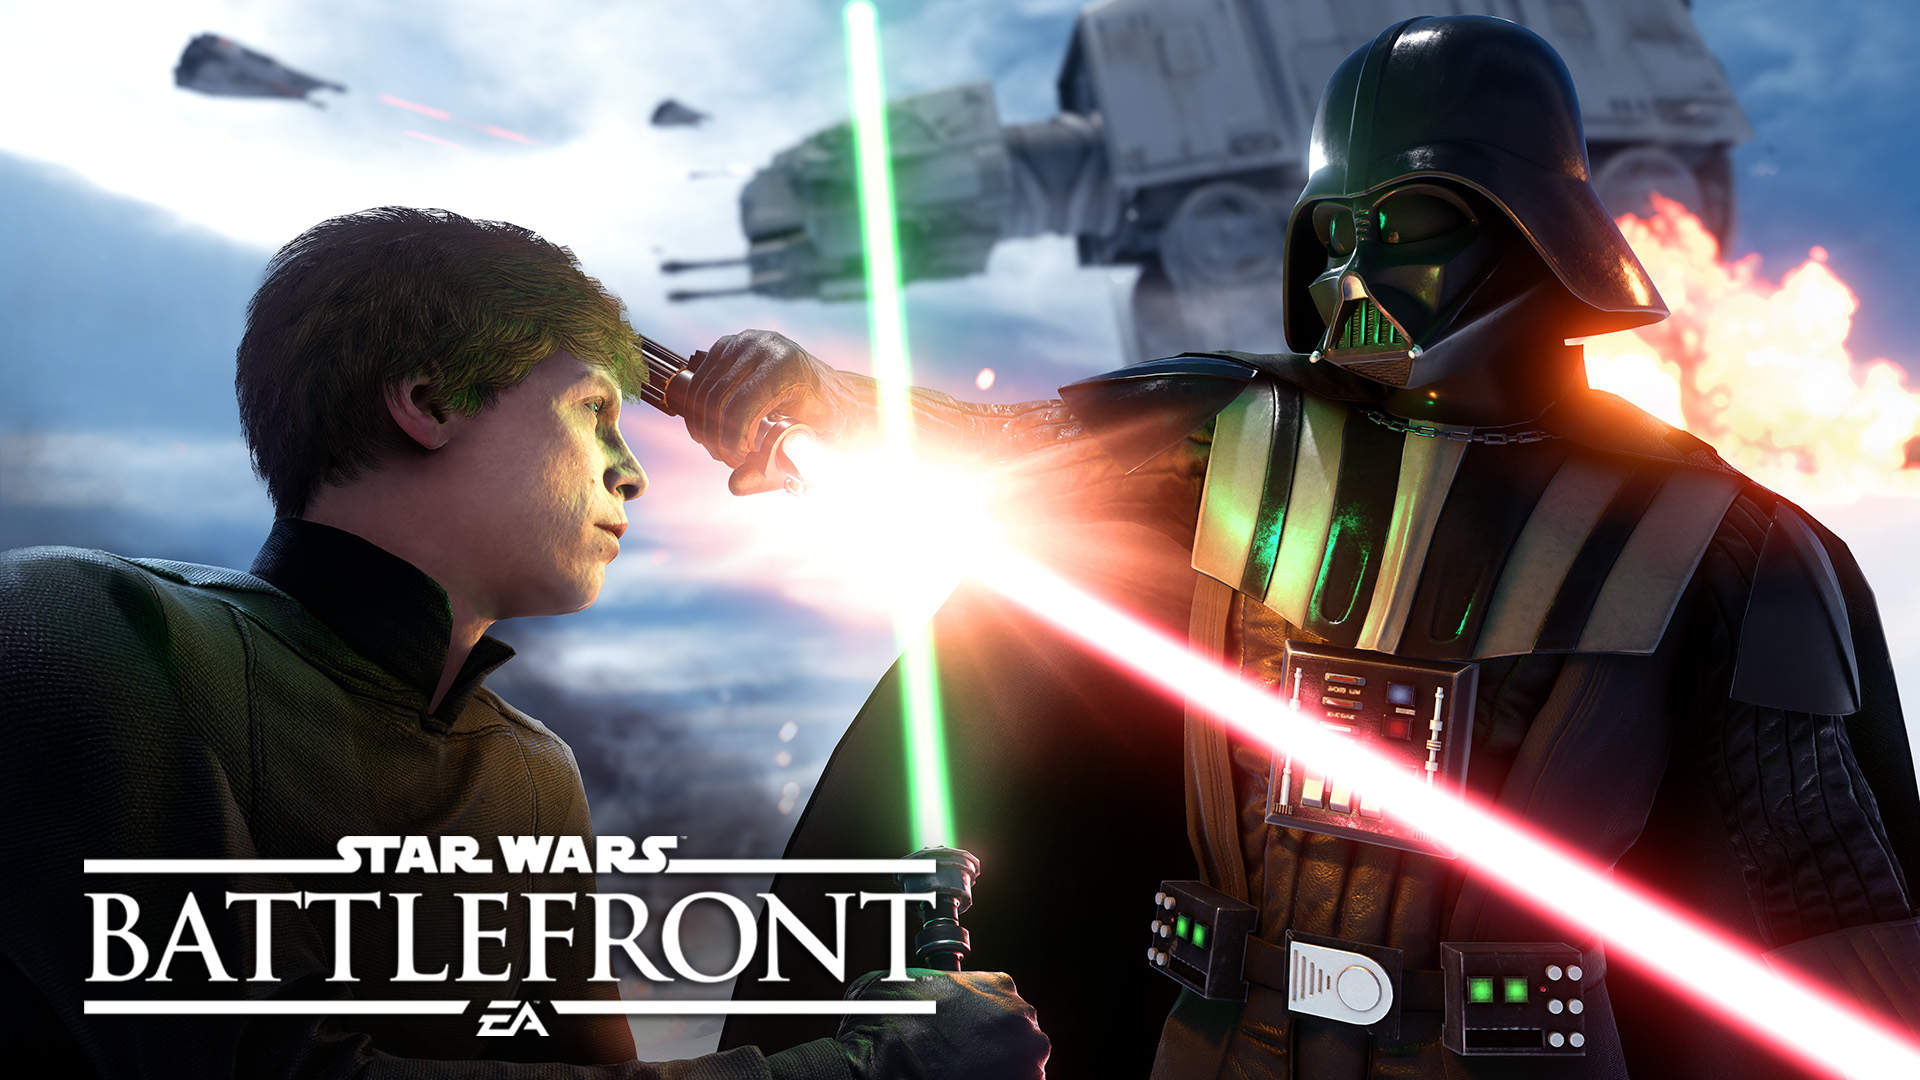 Star Wars Battlefront: The FPS Awakens